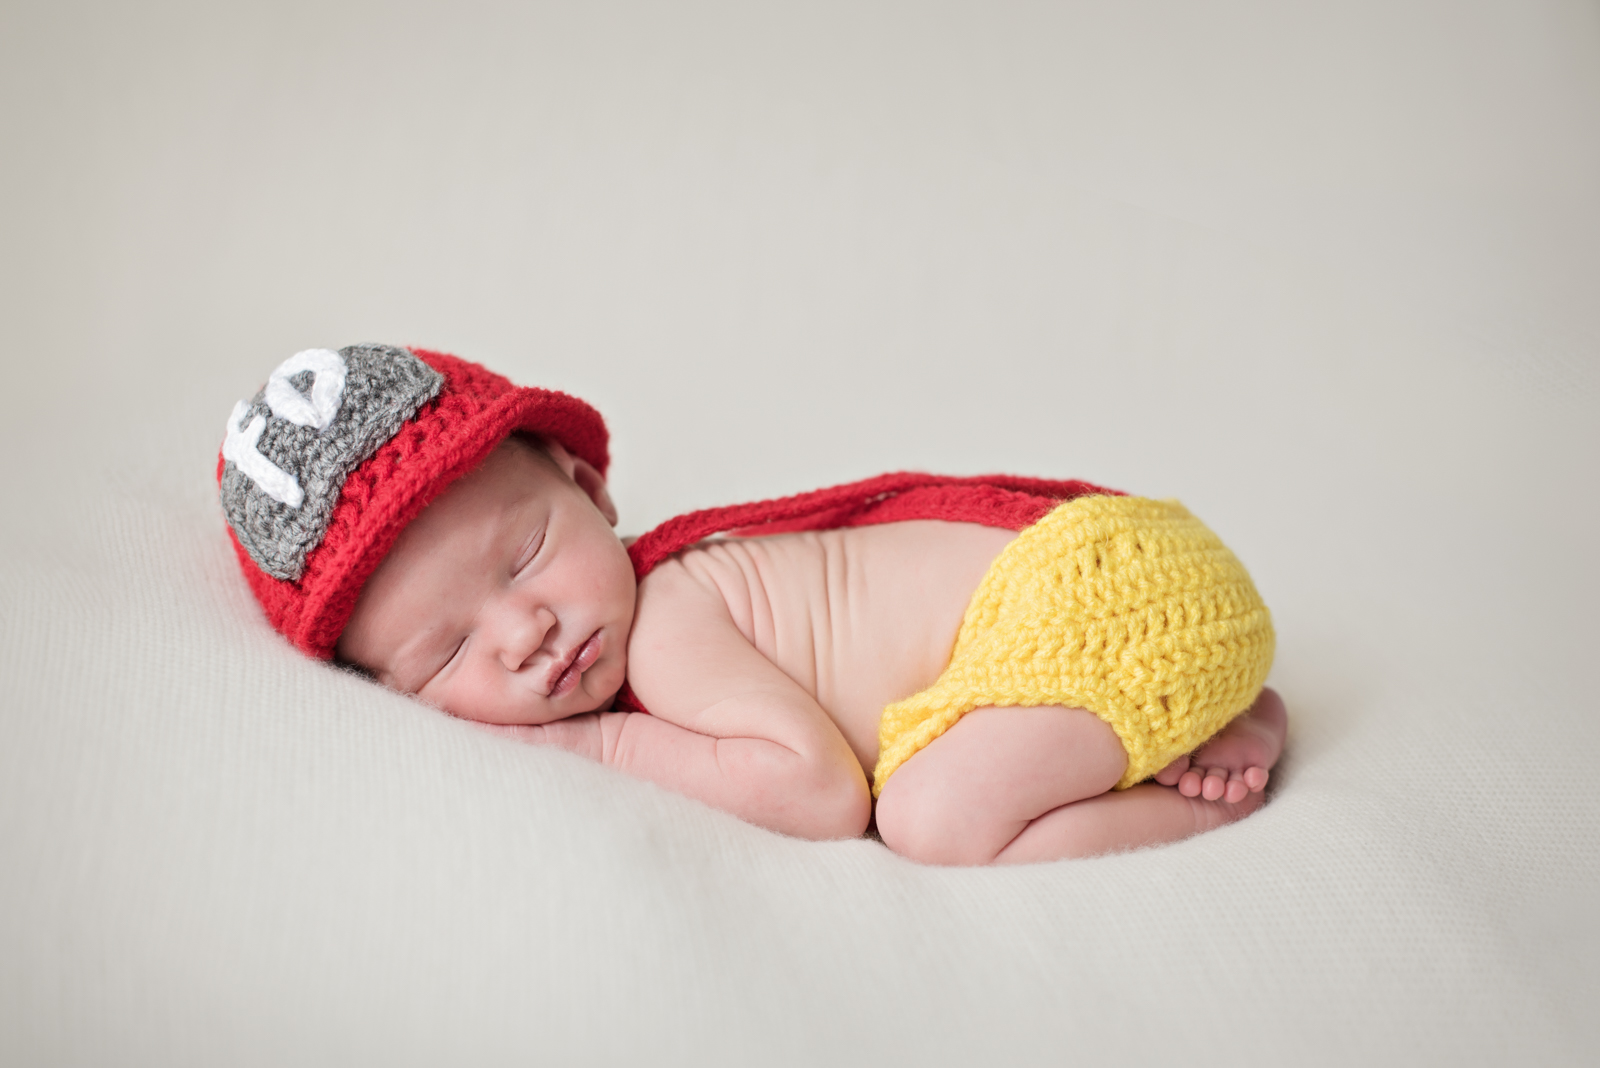 Tacoma Newborn Photographer (5 of 11).JPG